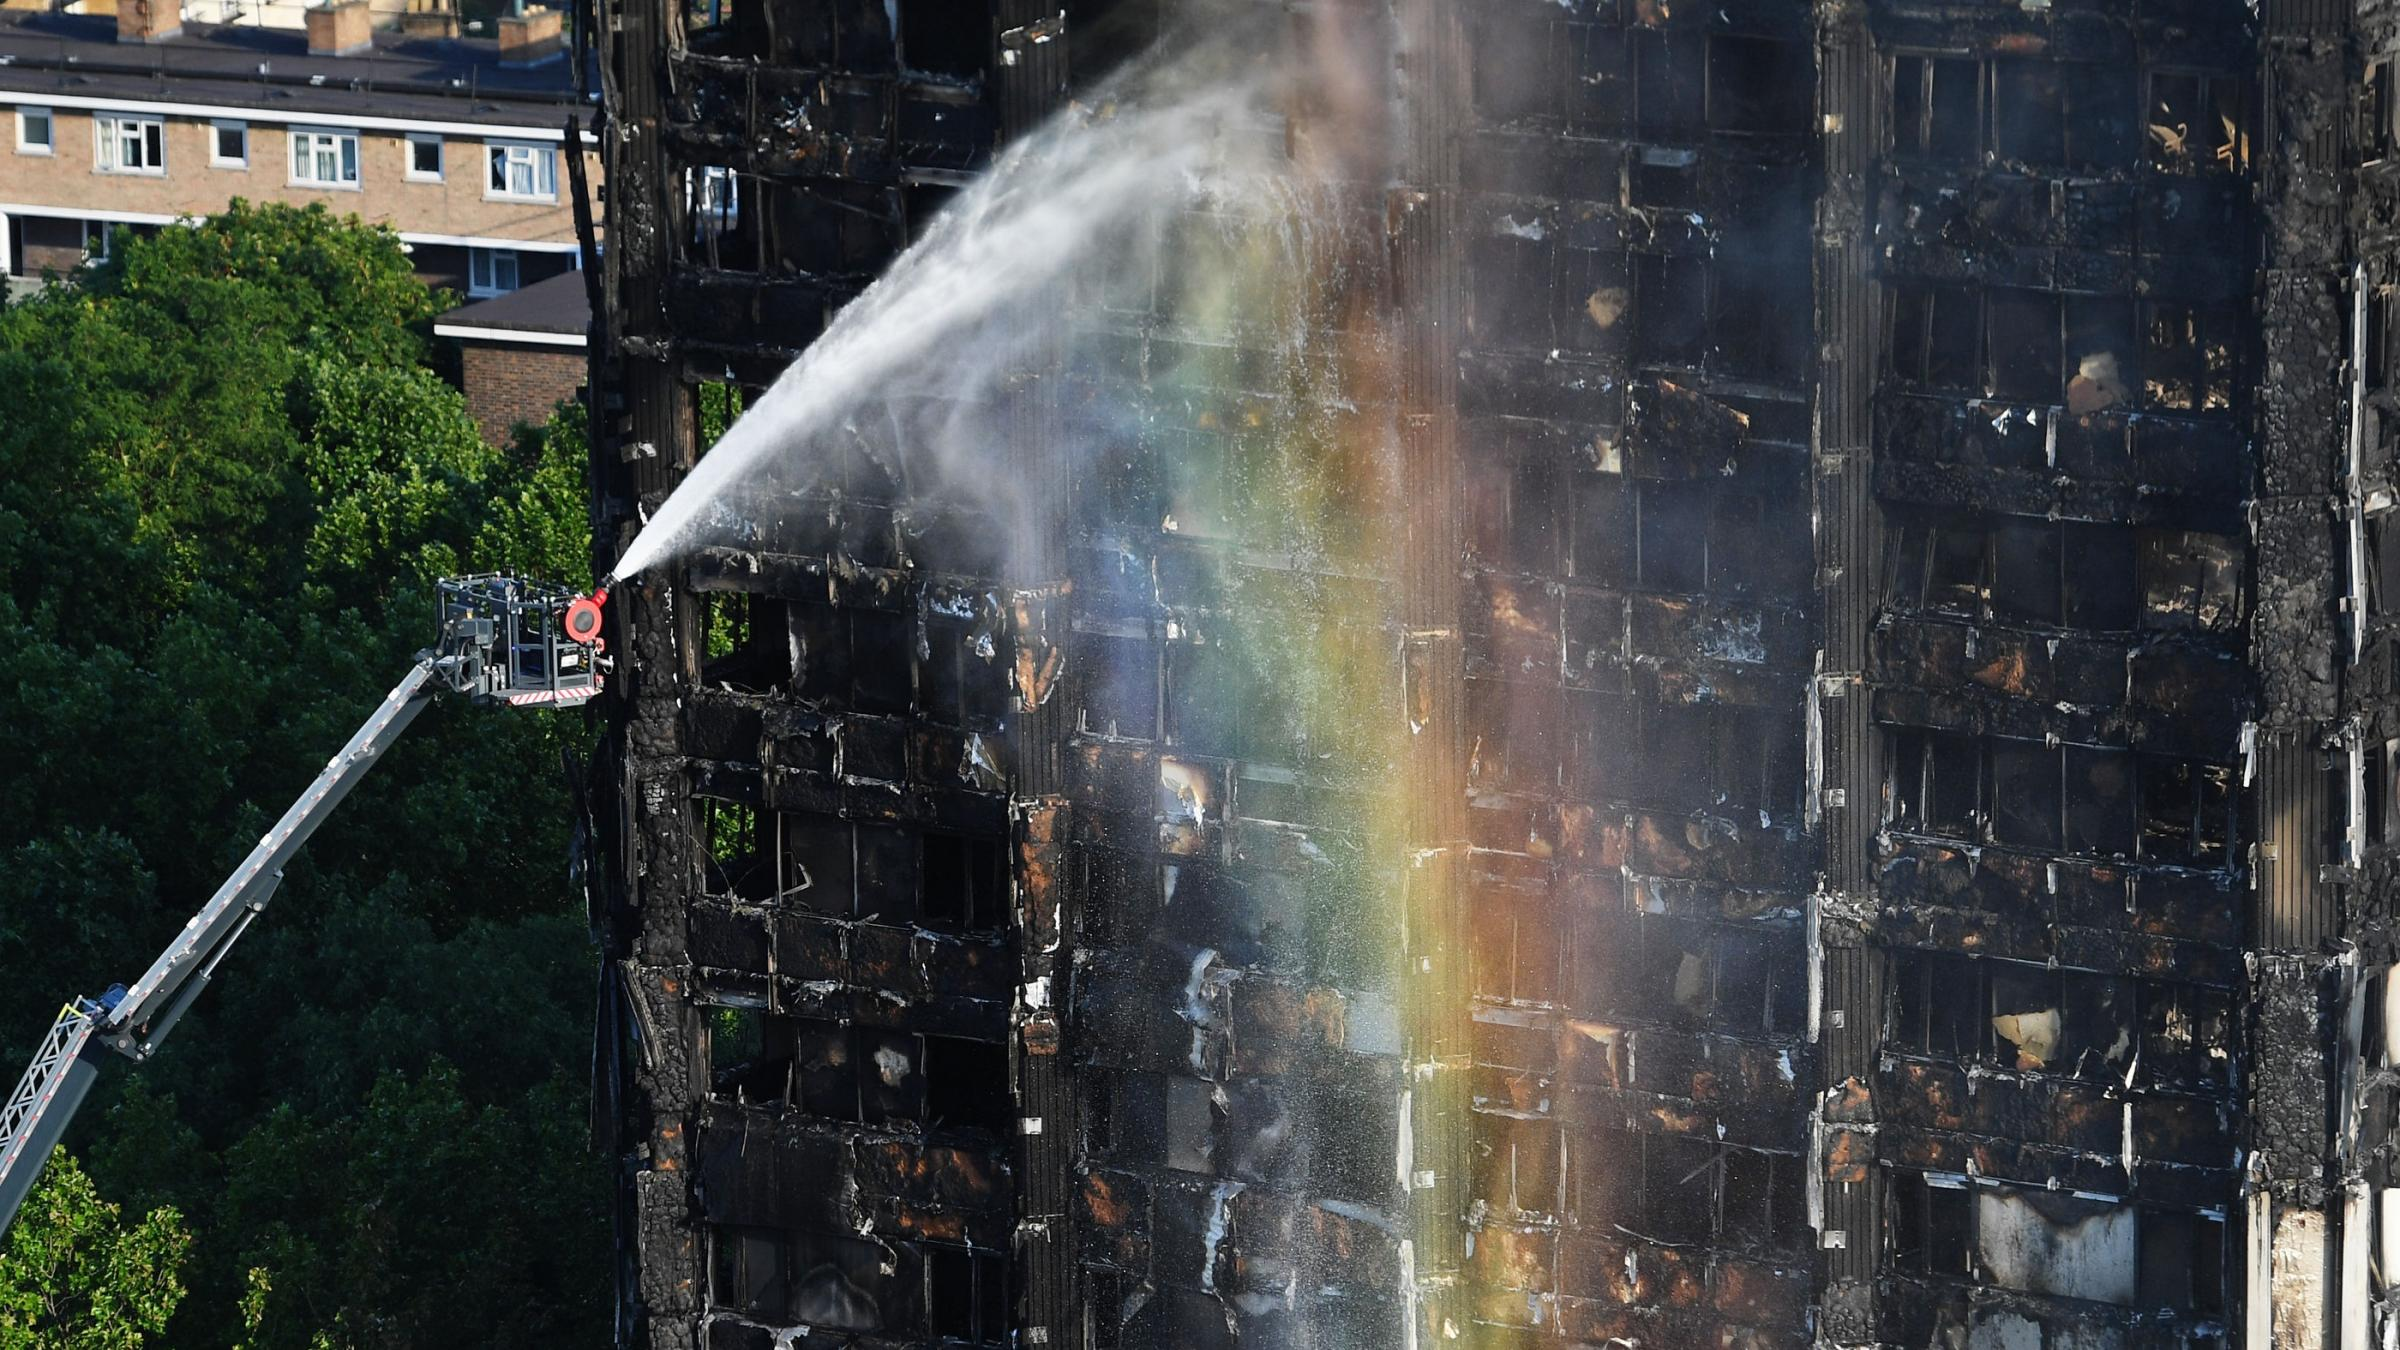 Firefighters Respond to Fire Engulfing London Apartment